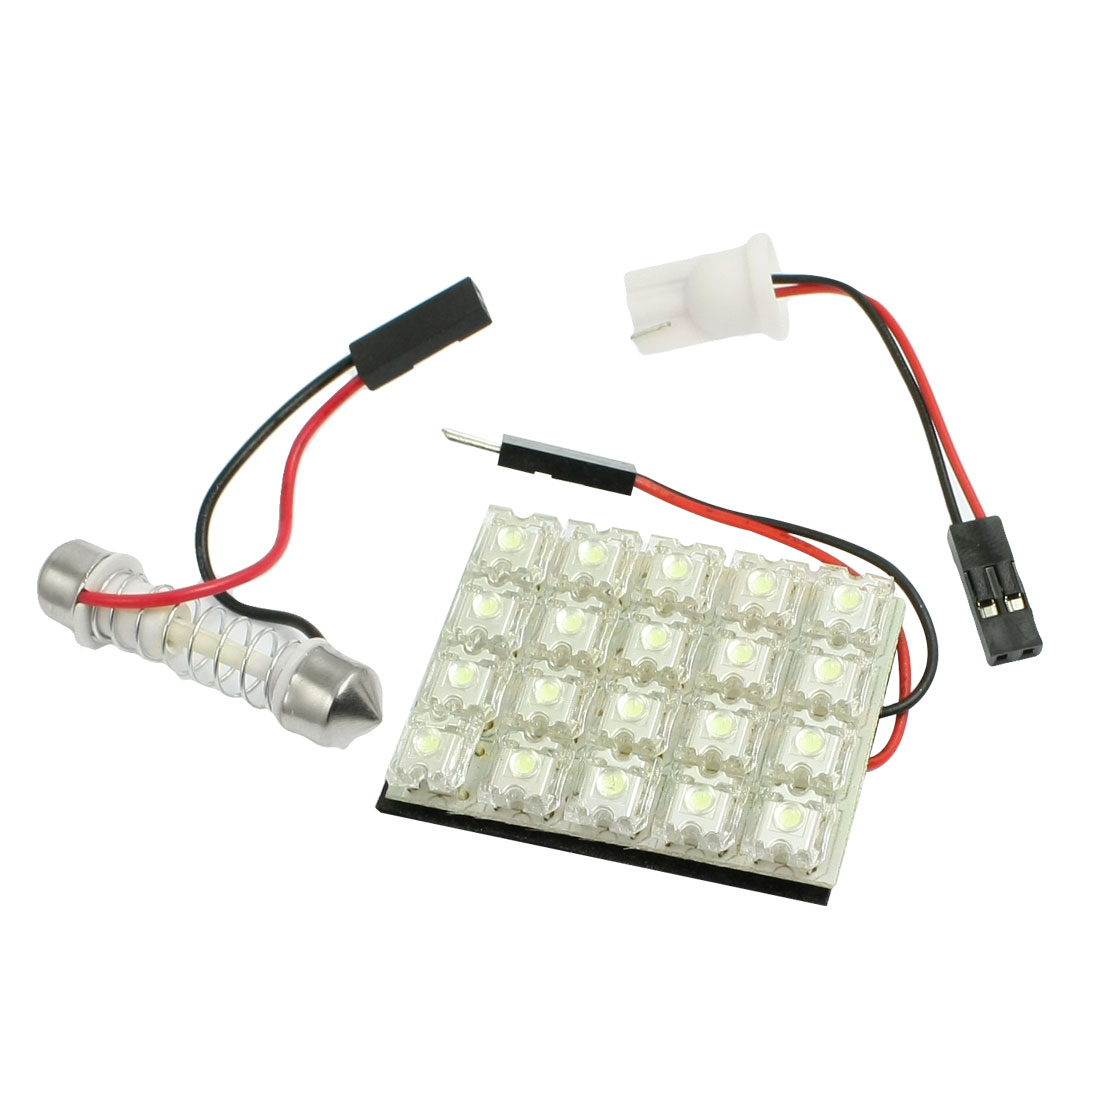 Vehicle Flux Piranha Panel 20 LED Interior White Festoon Dome Light Lamp